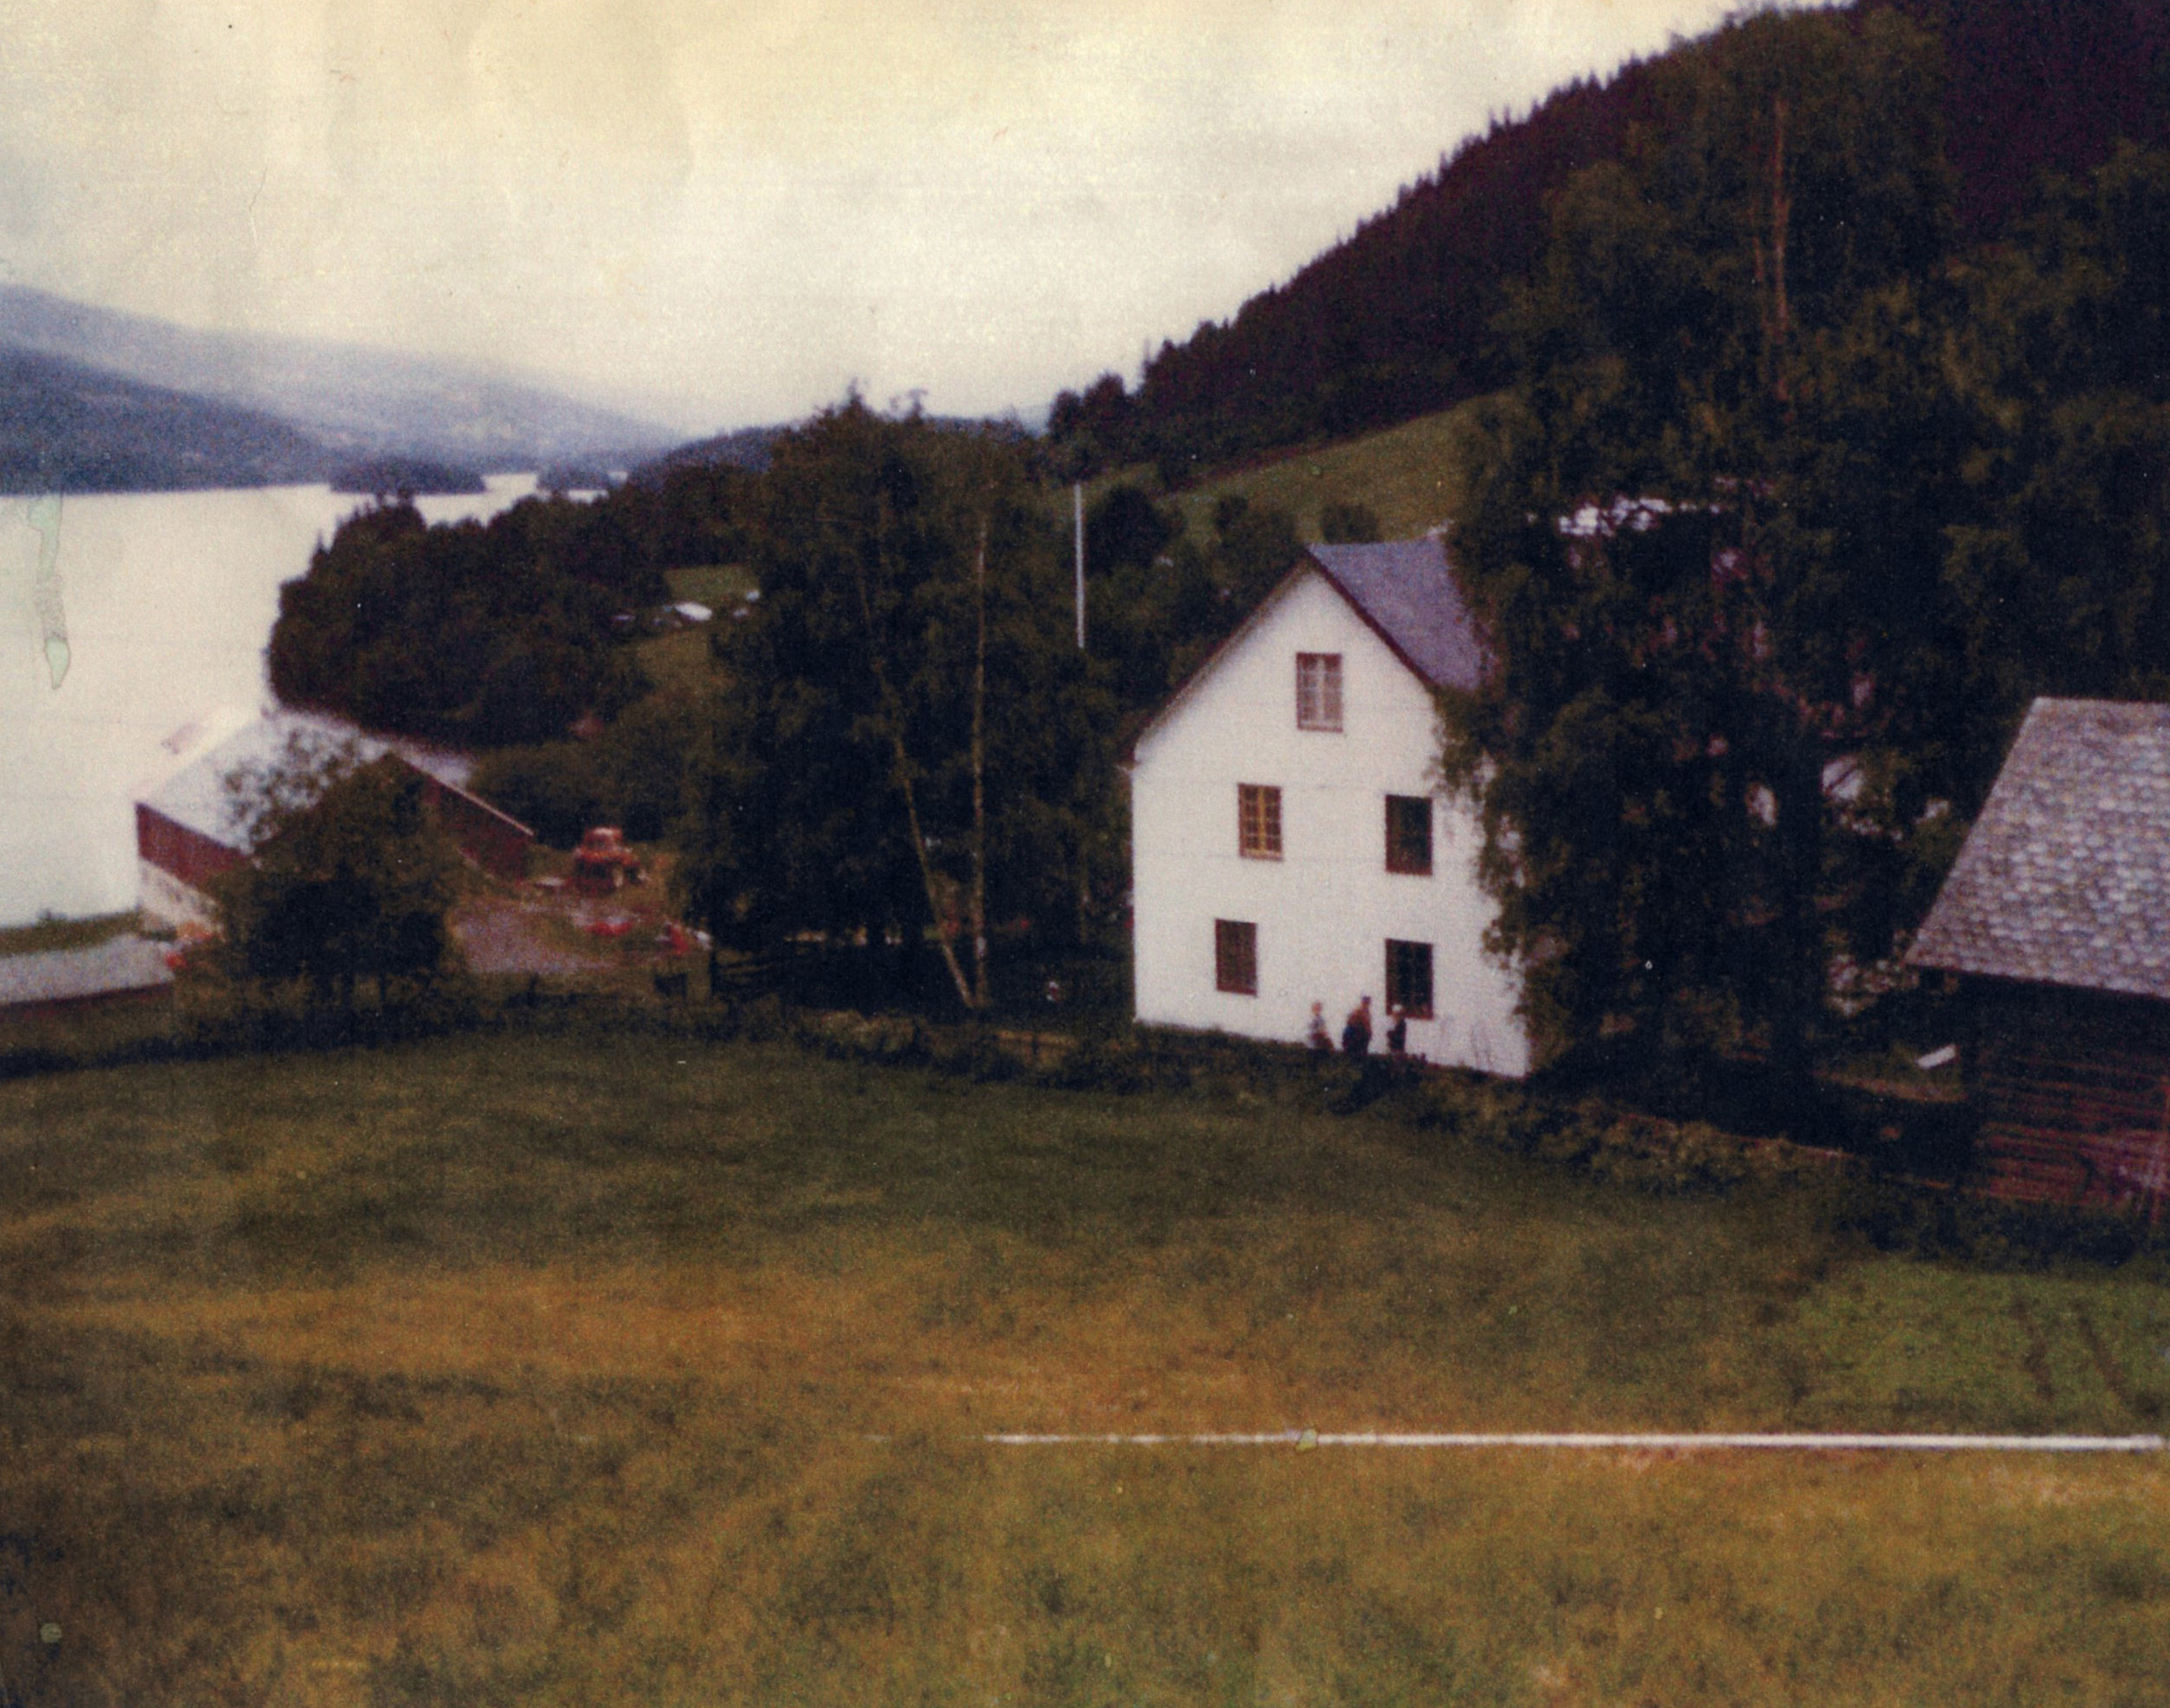 The Vik homestead in Vestre Slidre, Oppland county (now Innlandet county) in the Valdres valley of Norway. Photograph courtesy of edith Haugstad Nerstad, 1983.